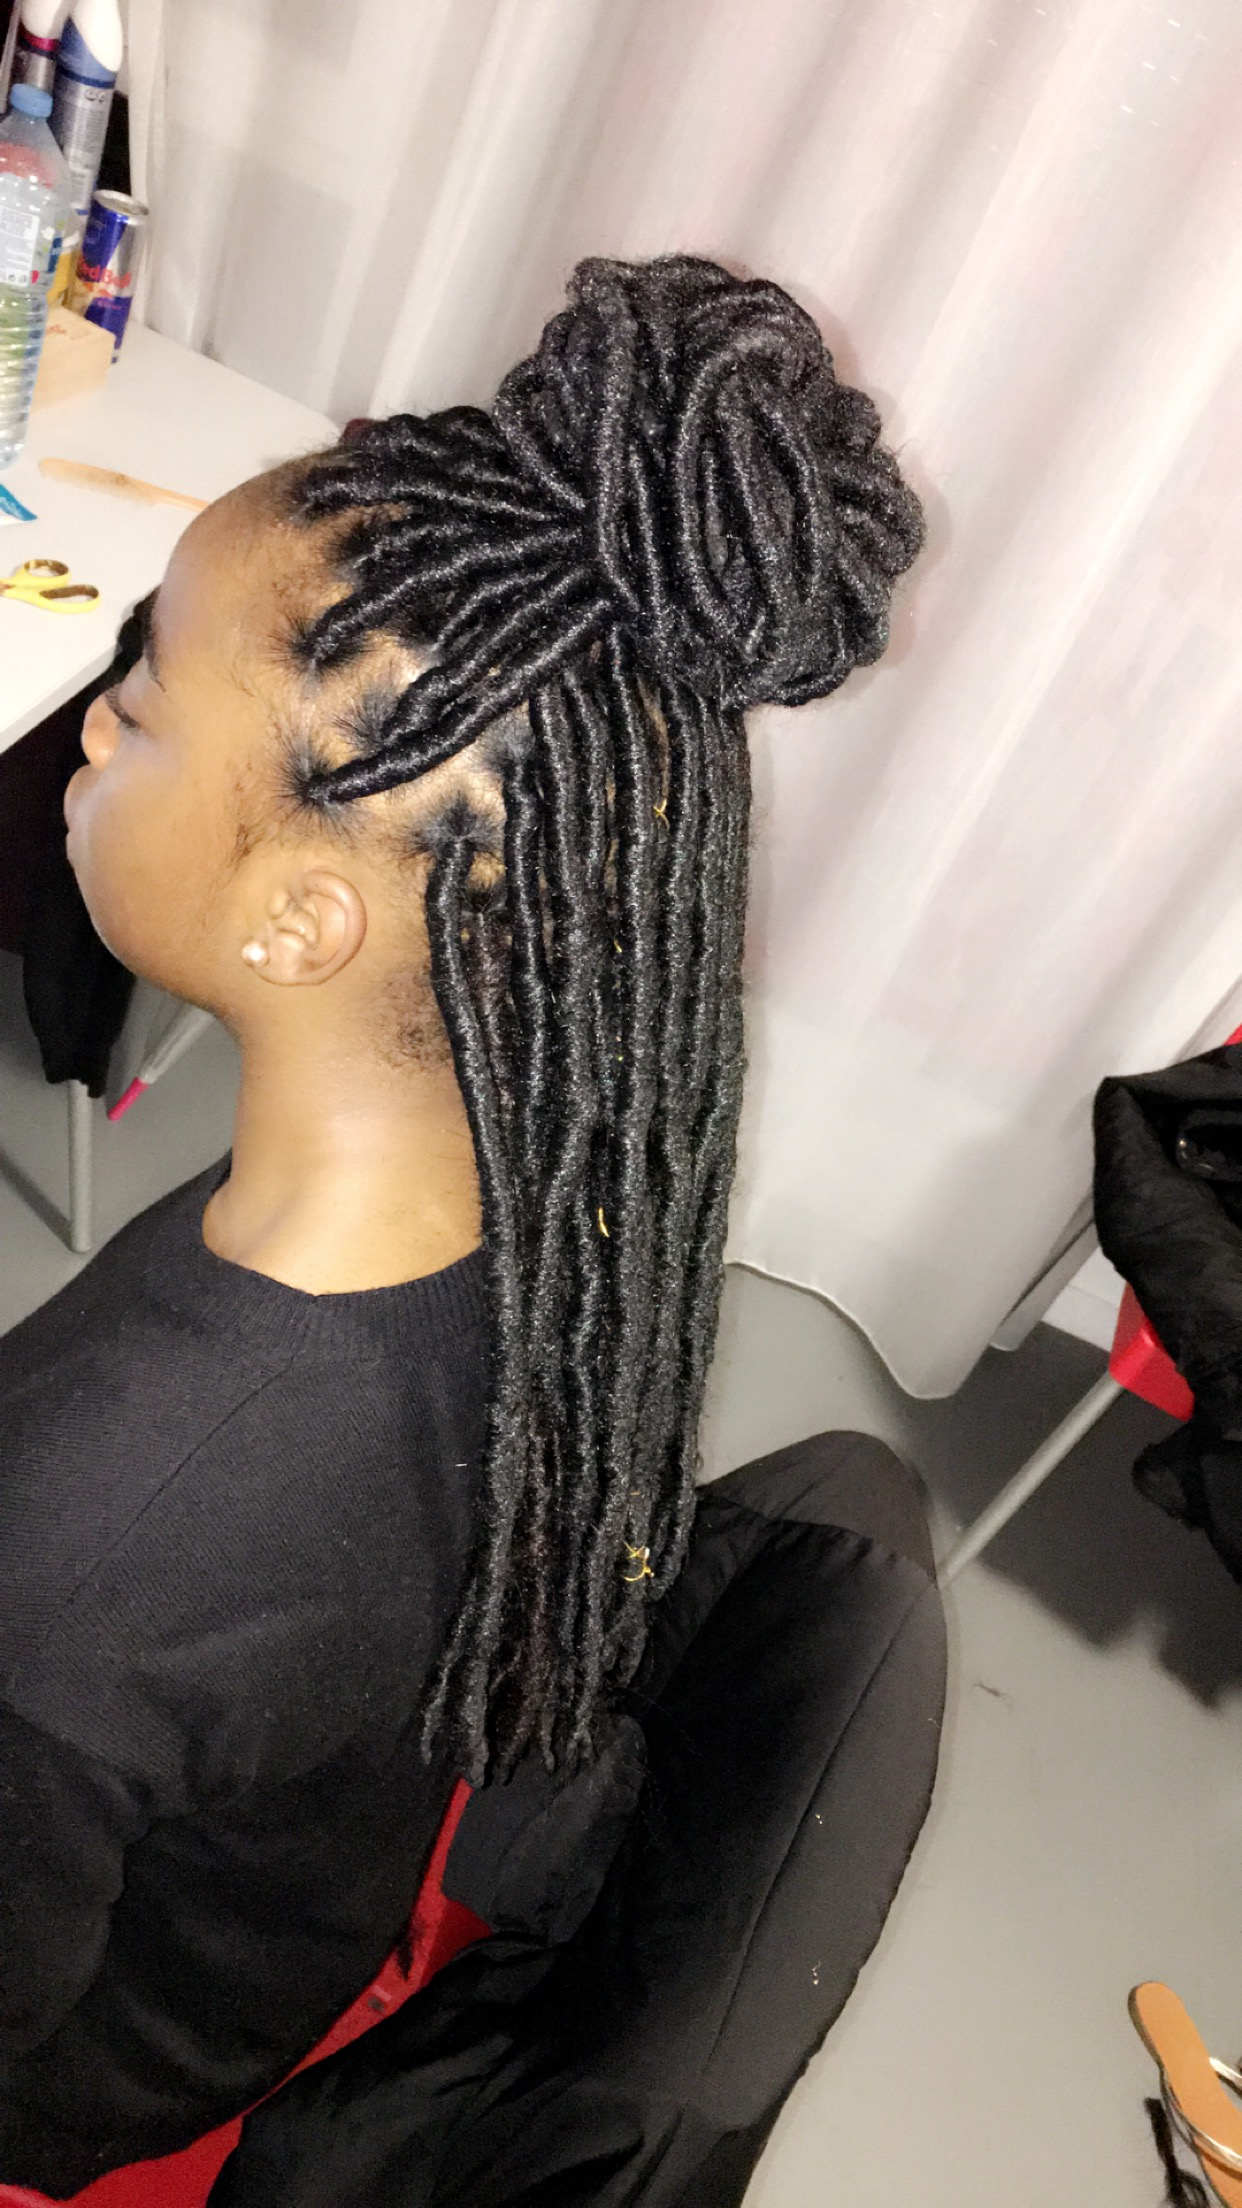 salon de coiffure afro tresse tresses box braids crochet braids vanilles tissages paris 75 77 78 91 92 93 94 95 EFPMUKDU